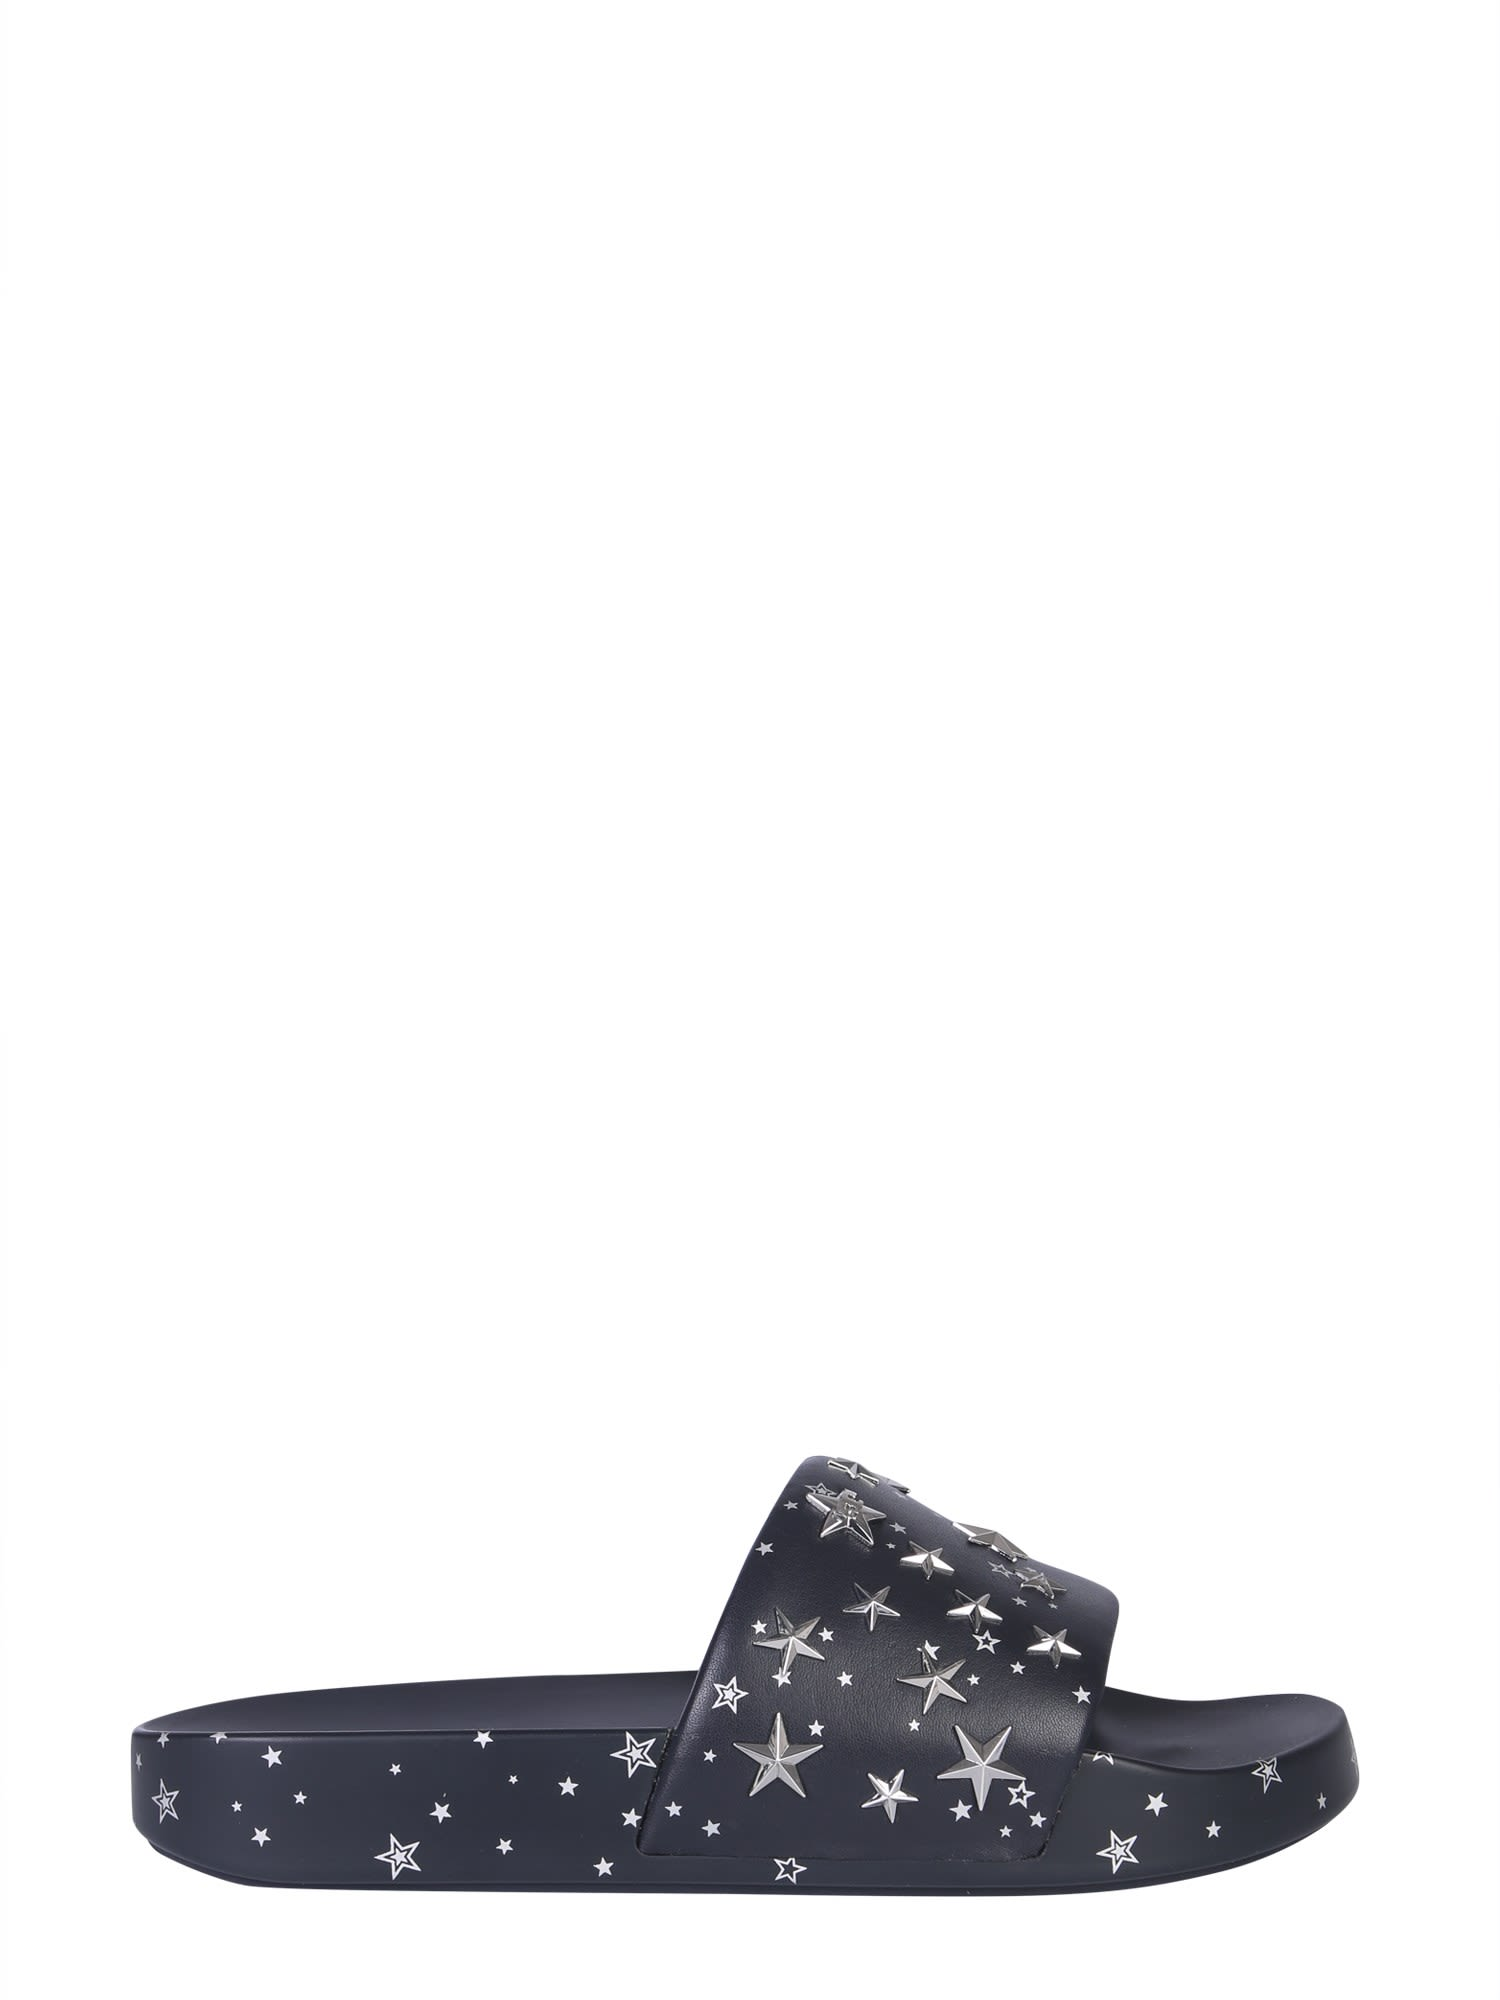 Tory Burch Slide Sandals With Stars